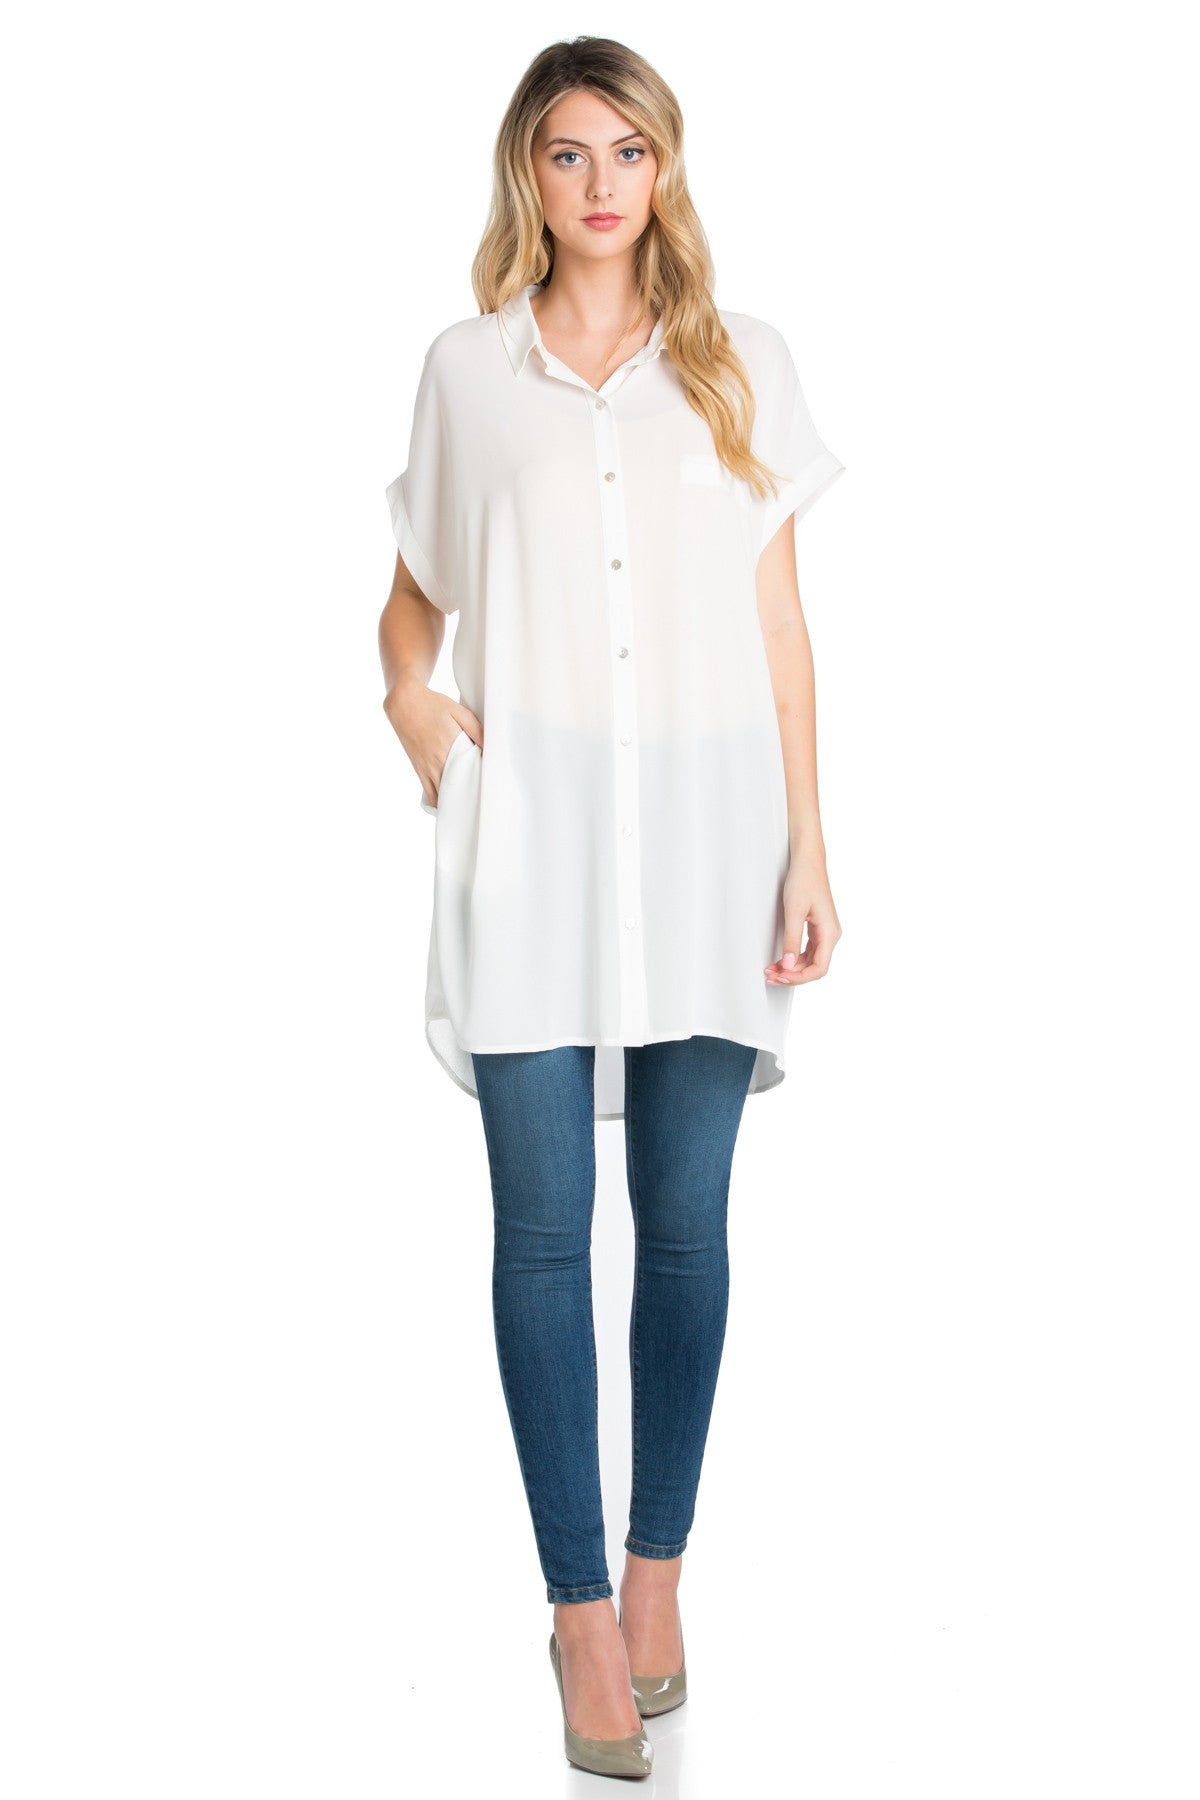 Short Sleeve Longline Button Down Chiffon Top in White - Tops - My Yuccie - 2